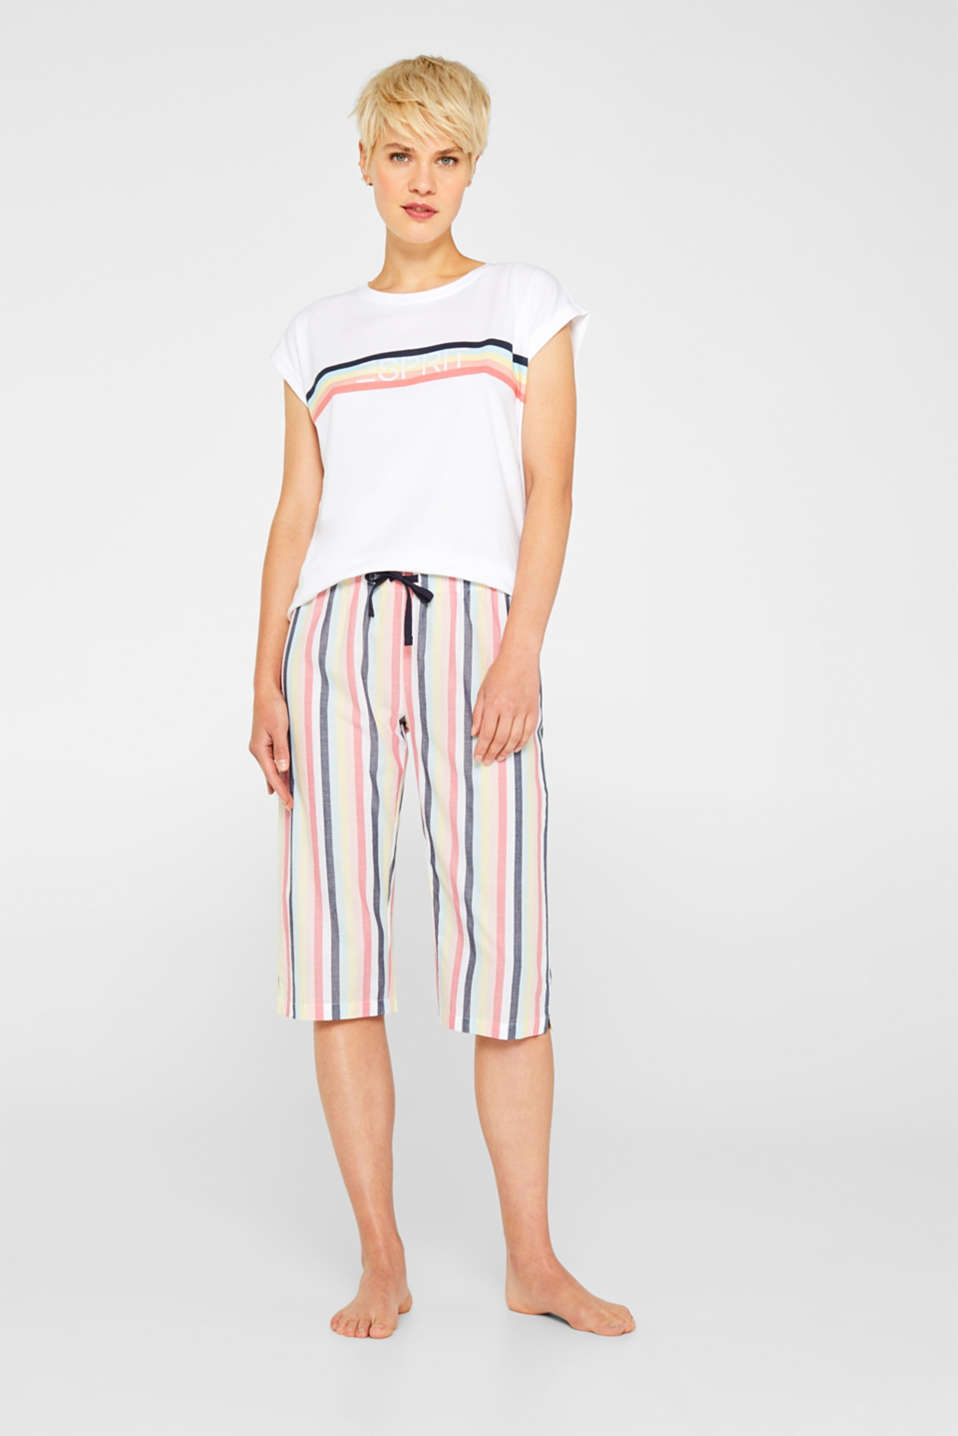 Esprit - Fabric capris with stripes, 100% cotton